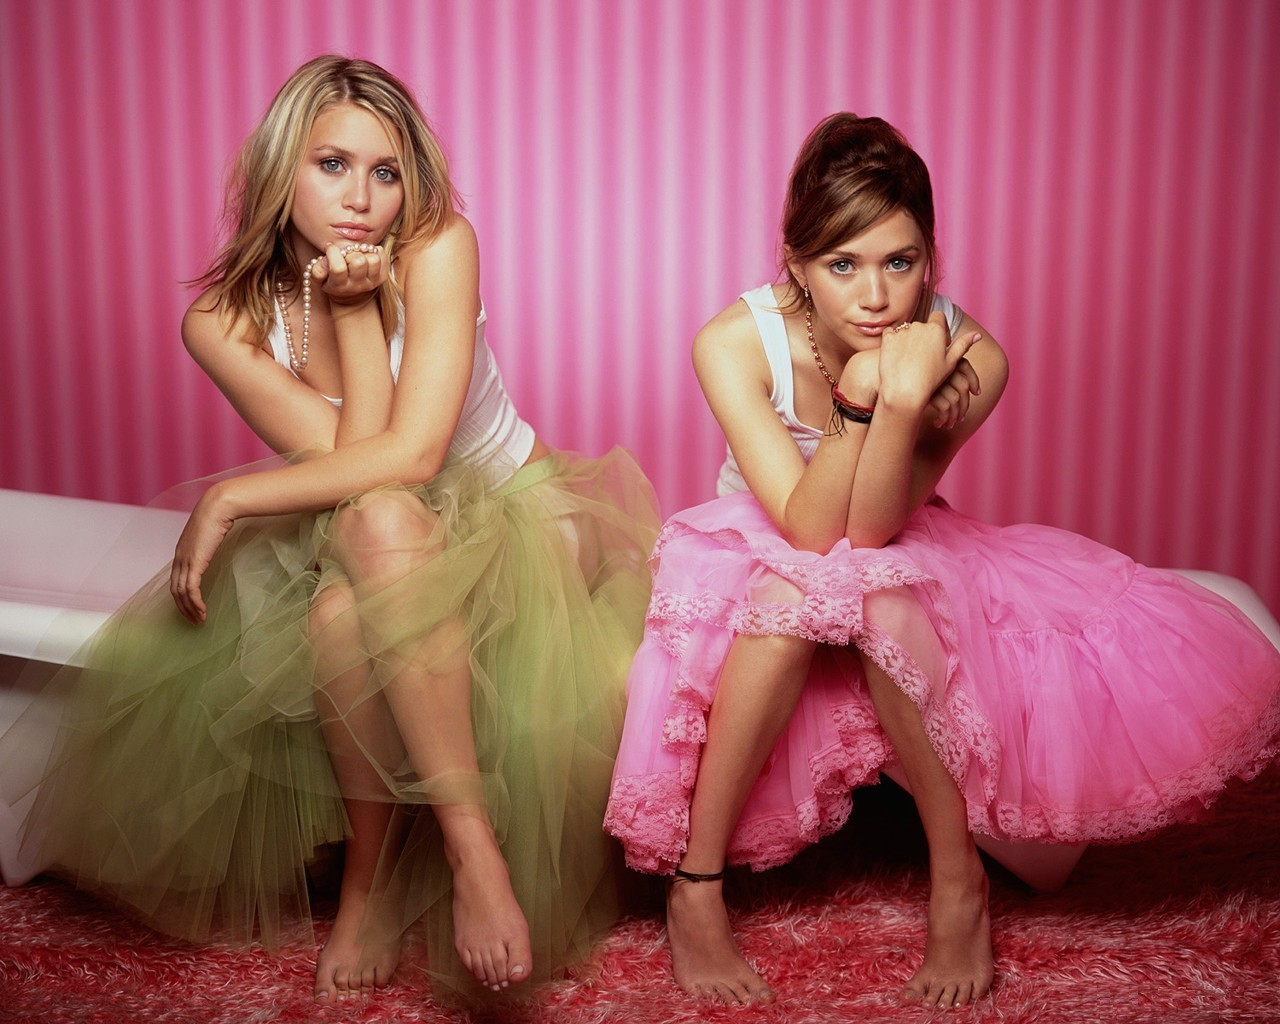 http://2.bp.blogspot.com/-5uQCv07fzKU/Twjq5VVcdaI/AAAAAAAAAhw/UlcXCw9iAgs/s1600/ashley-mary_-_kate_olsen.jpg